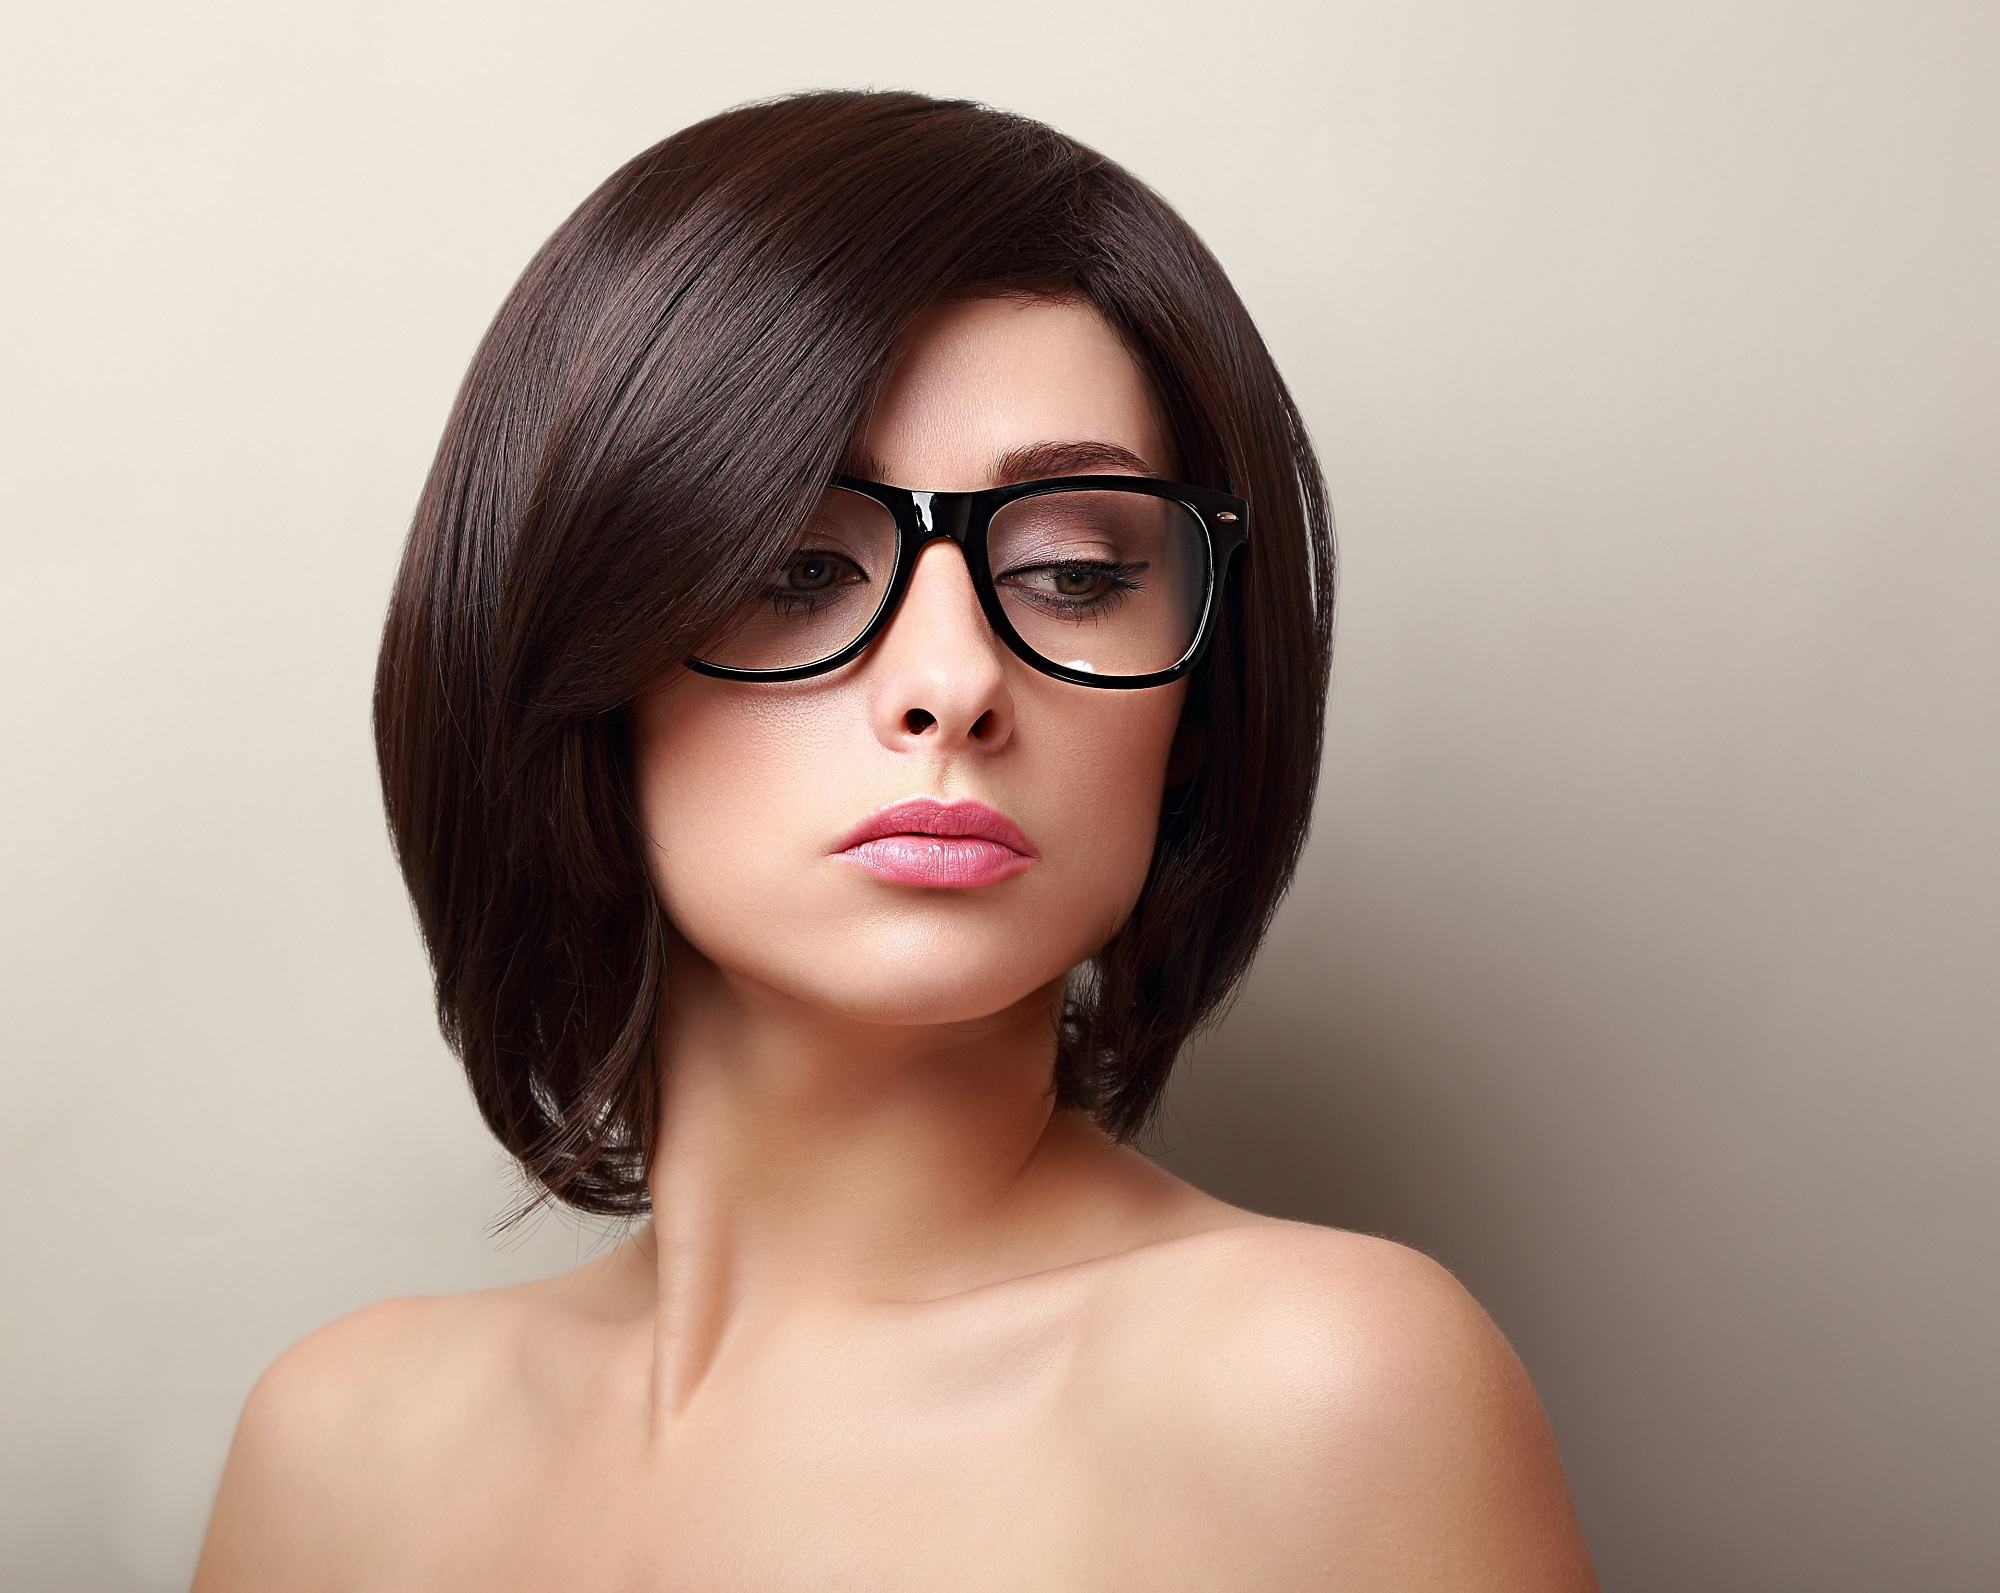 Bangs With Glasses: Rock This Look With These Hairstyle Pegs